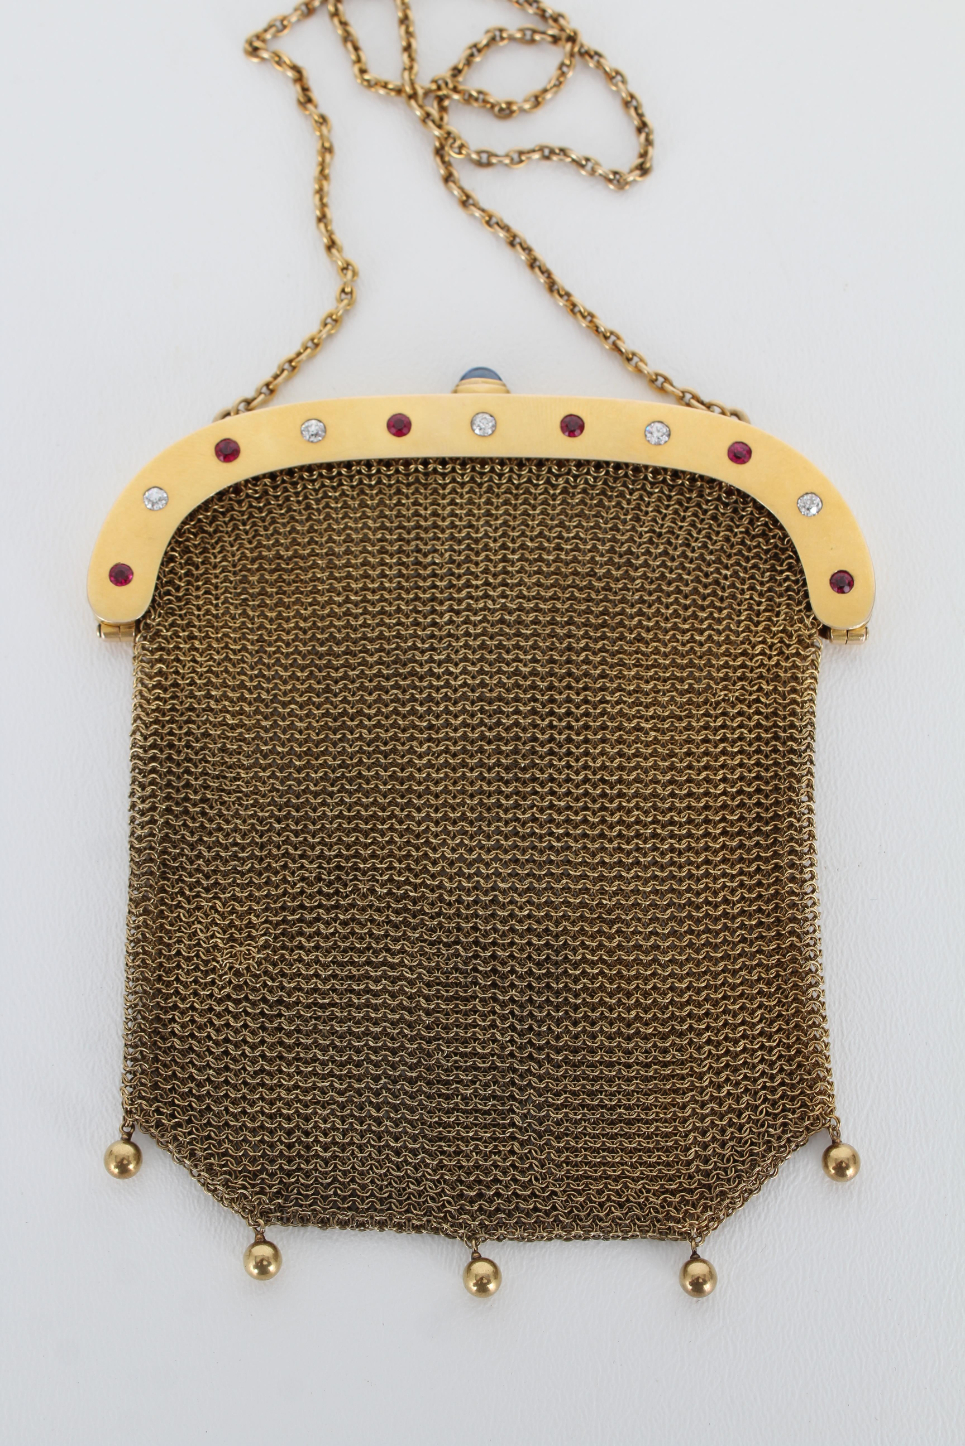 14K Gold Mesh Coin Purse w/ Diamond & Ruby Clasp - Image 2 of 6